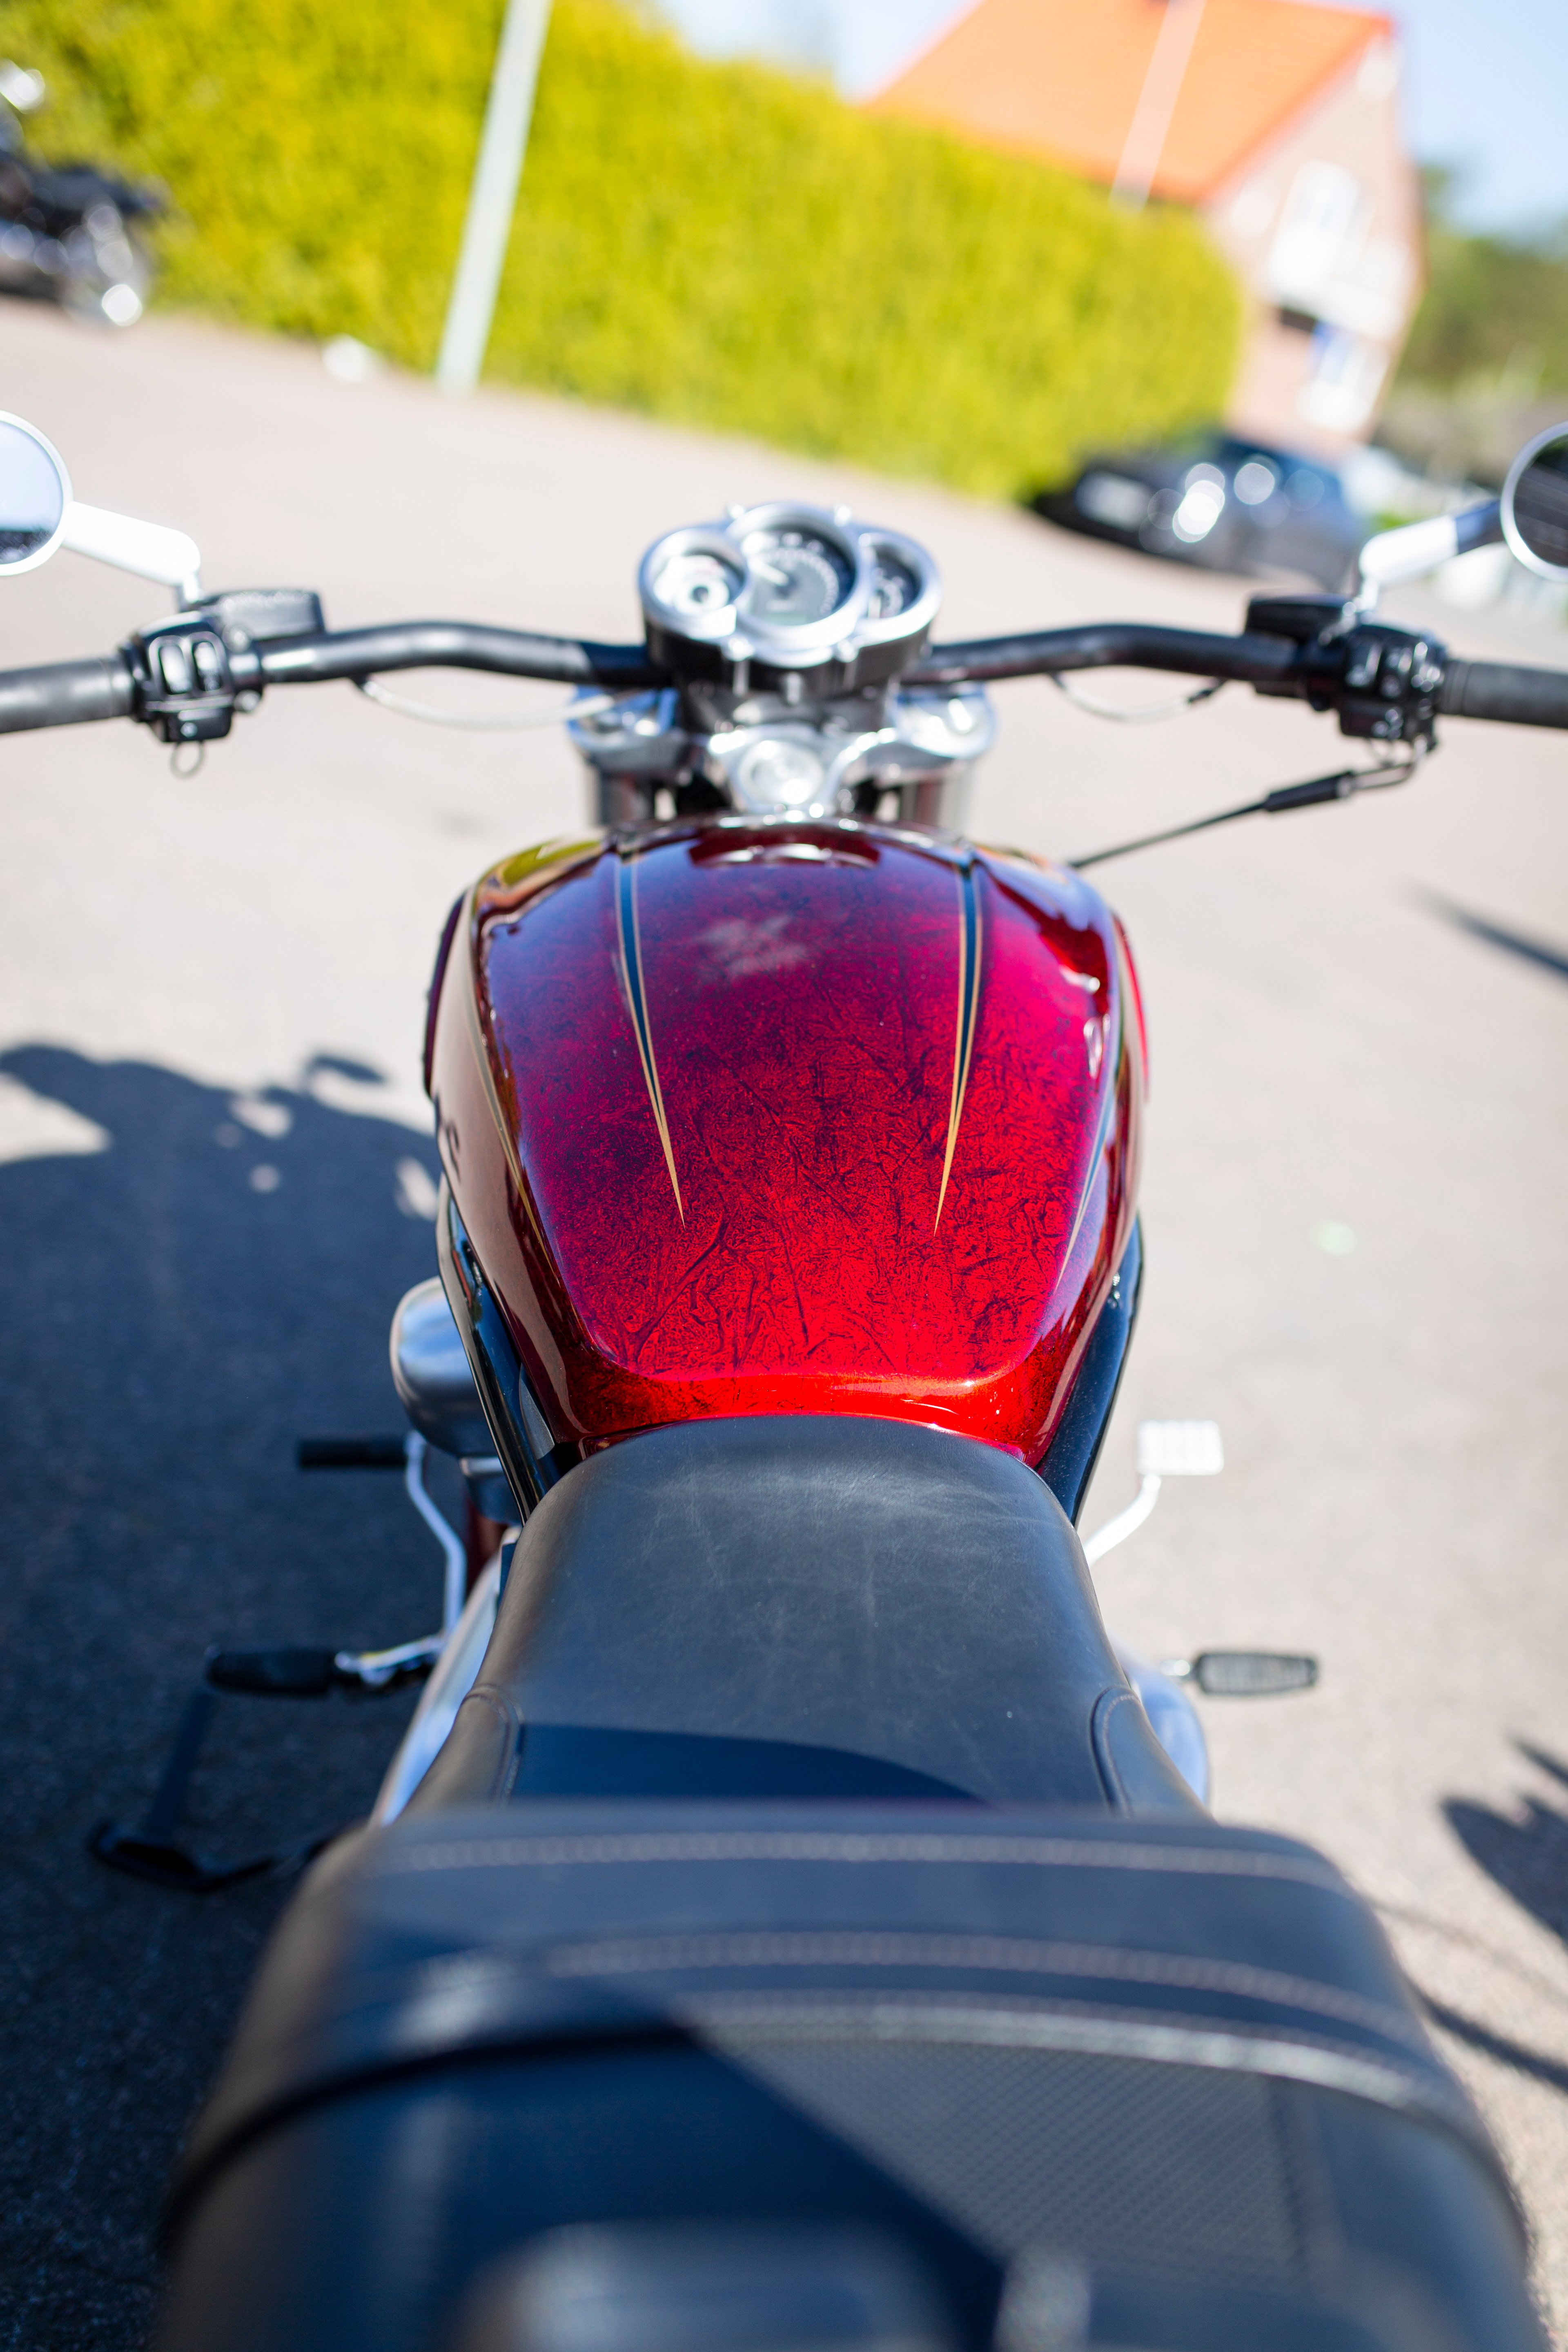 Harley Davidson Muscle gold scallops red candy marble 31